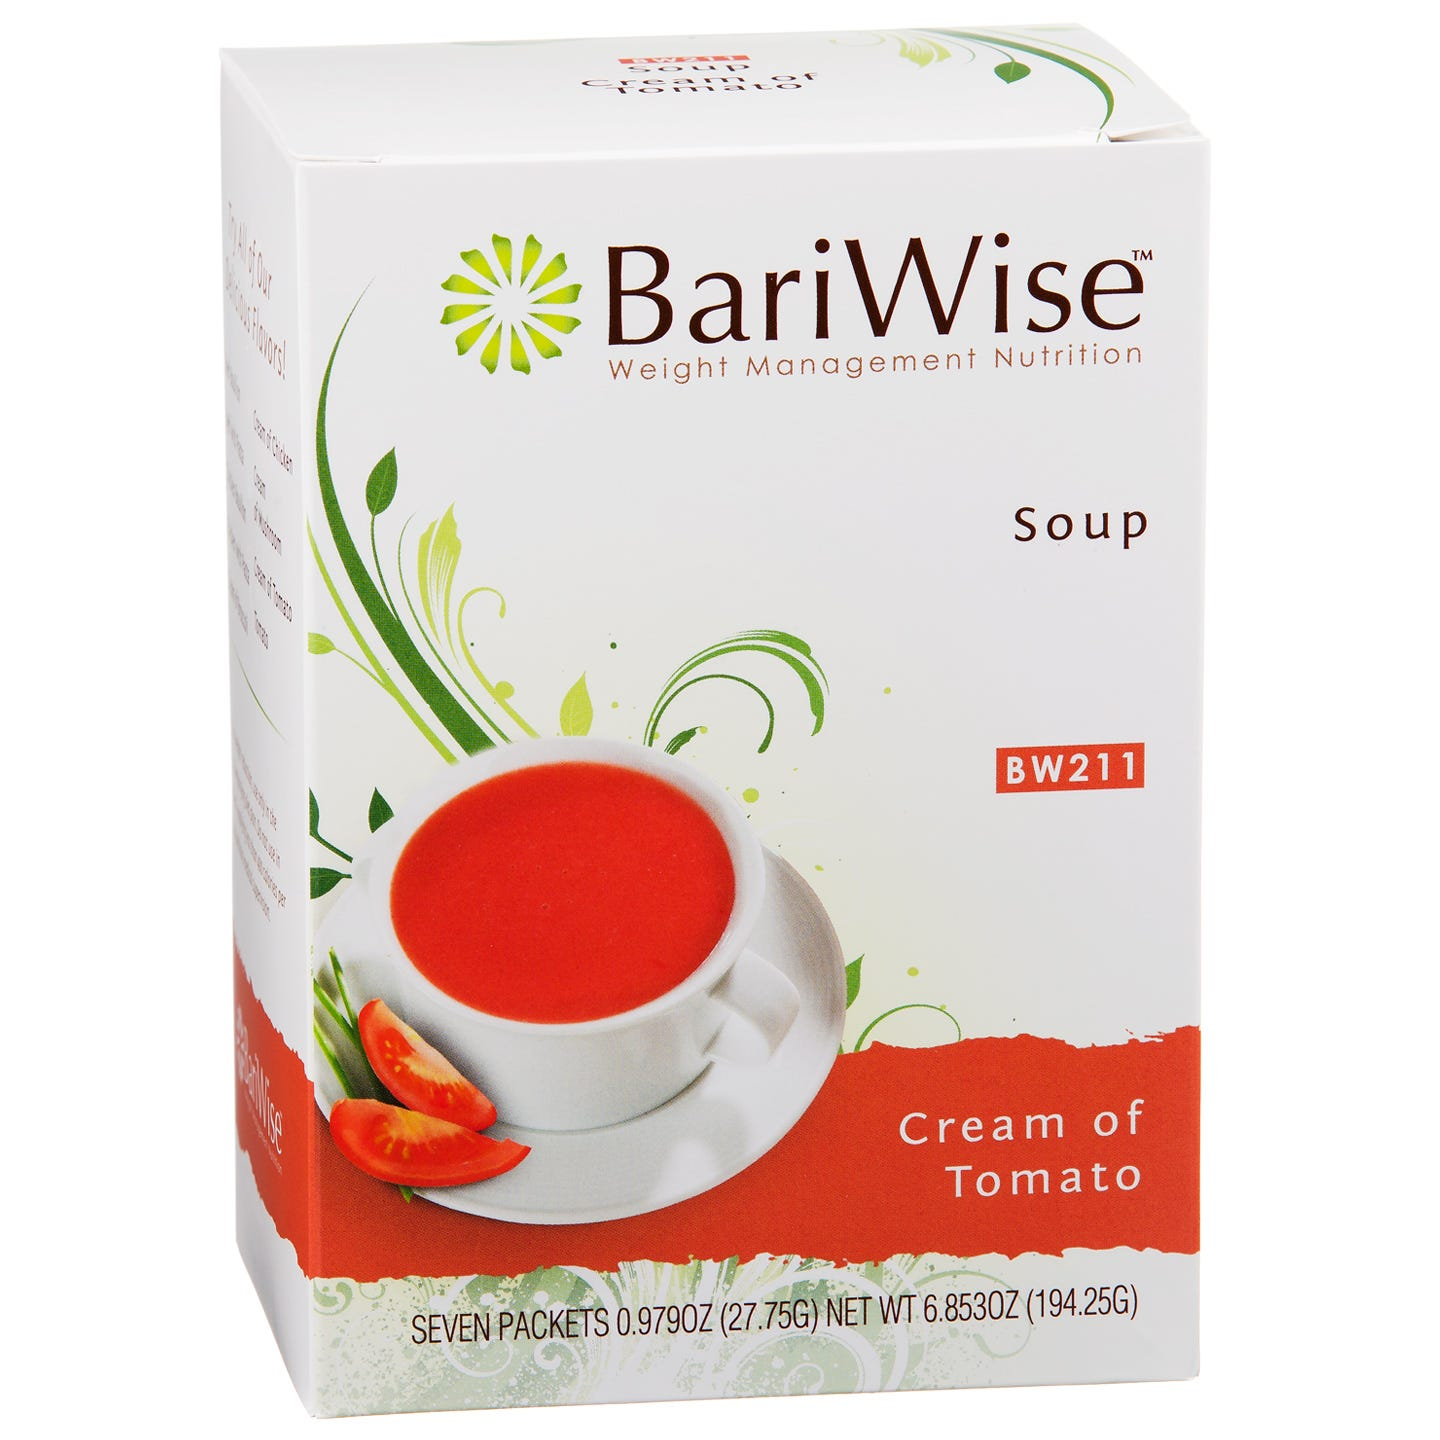 BariWise Protein Diet Soups - Cream of Tomato